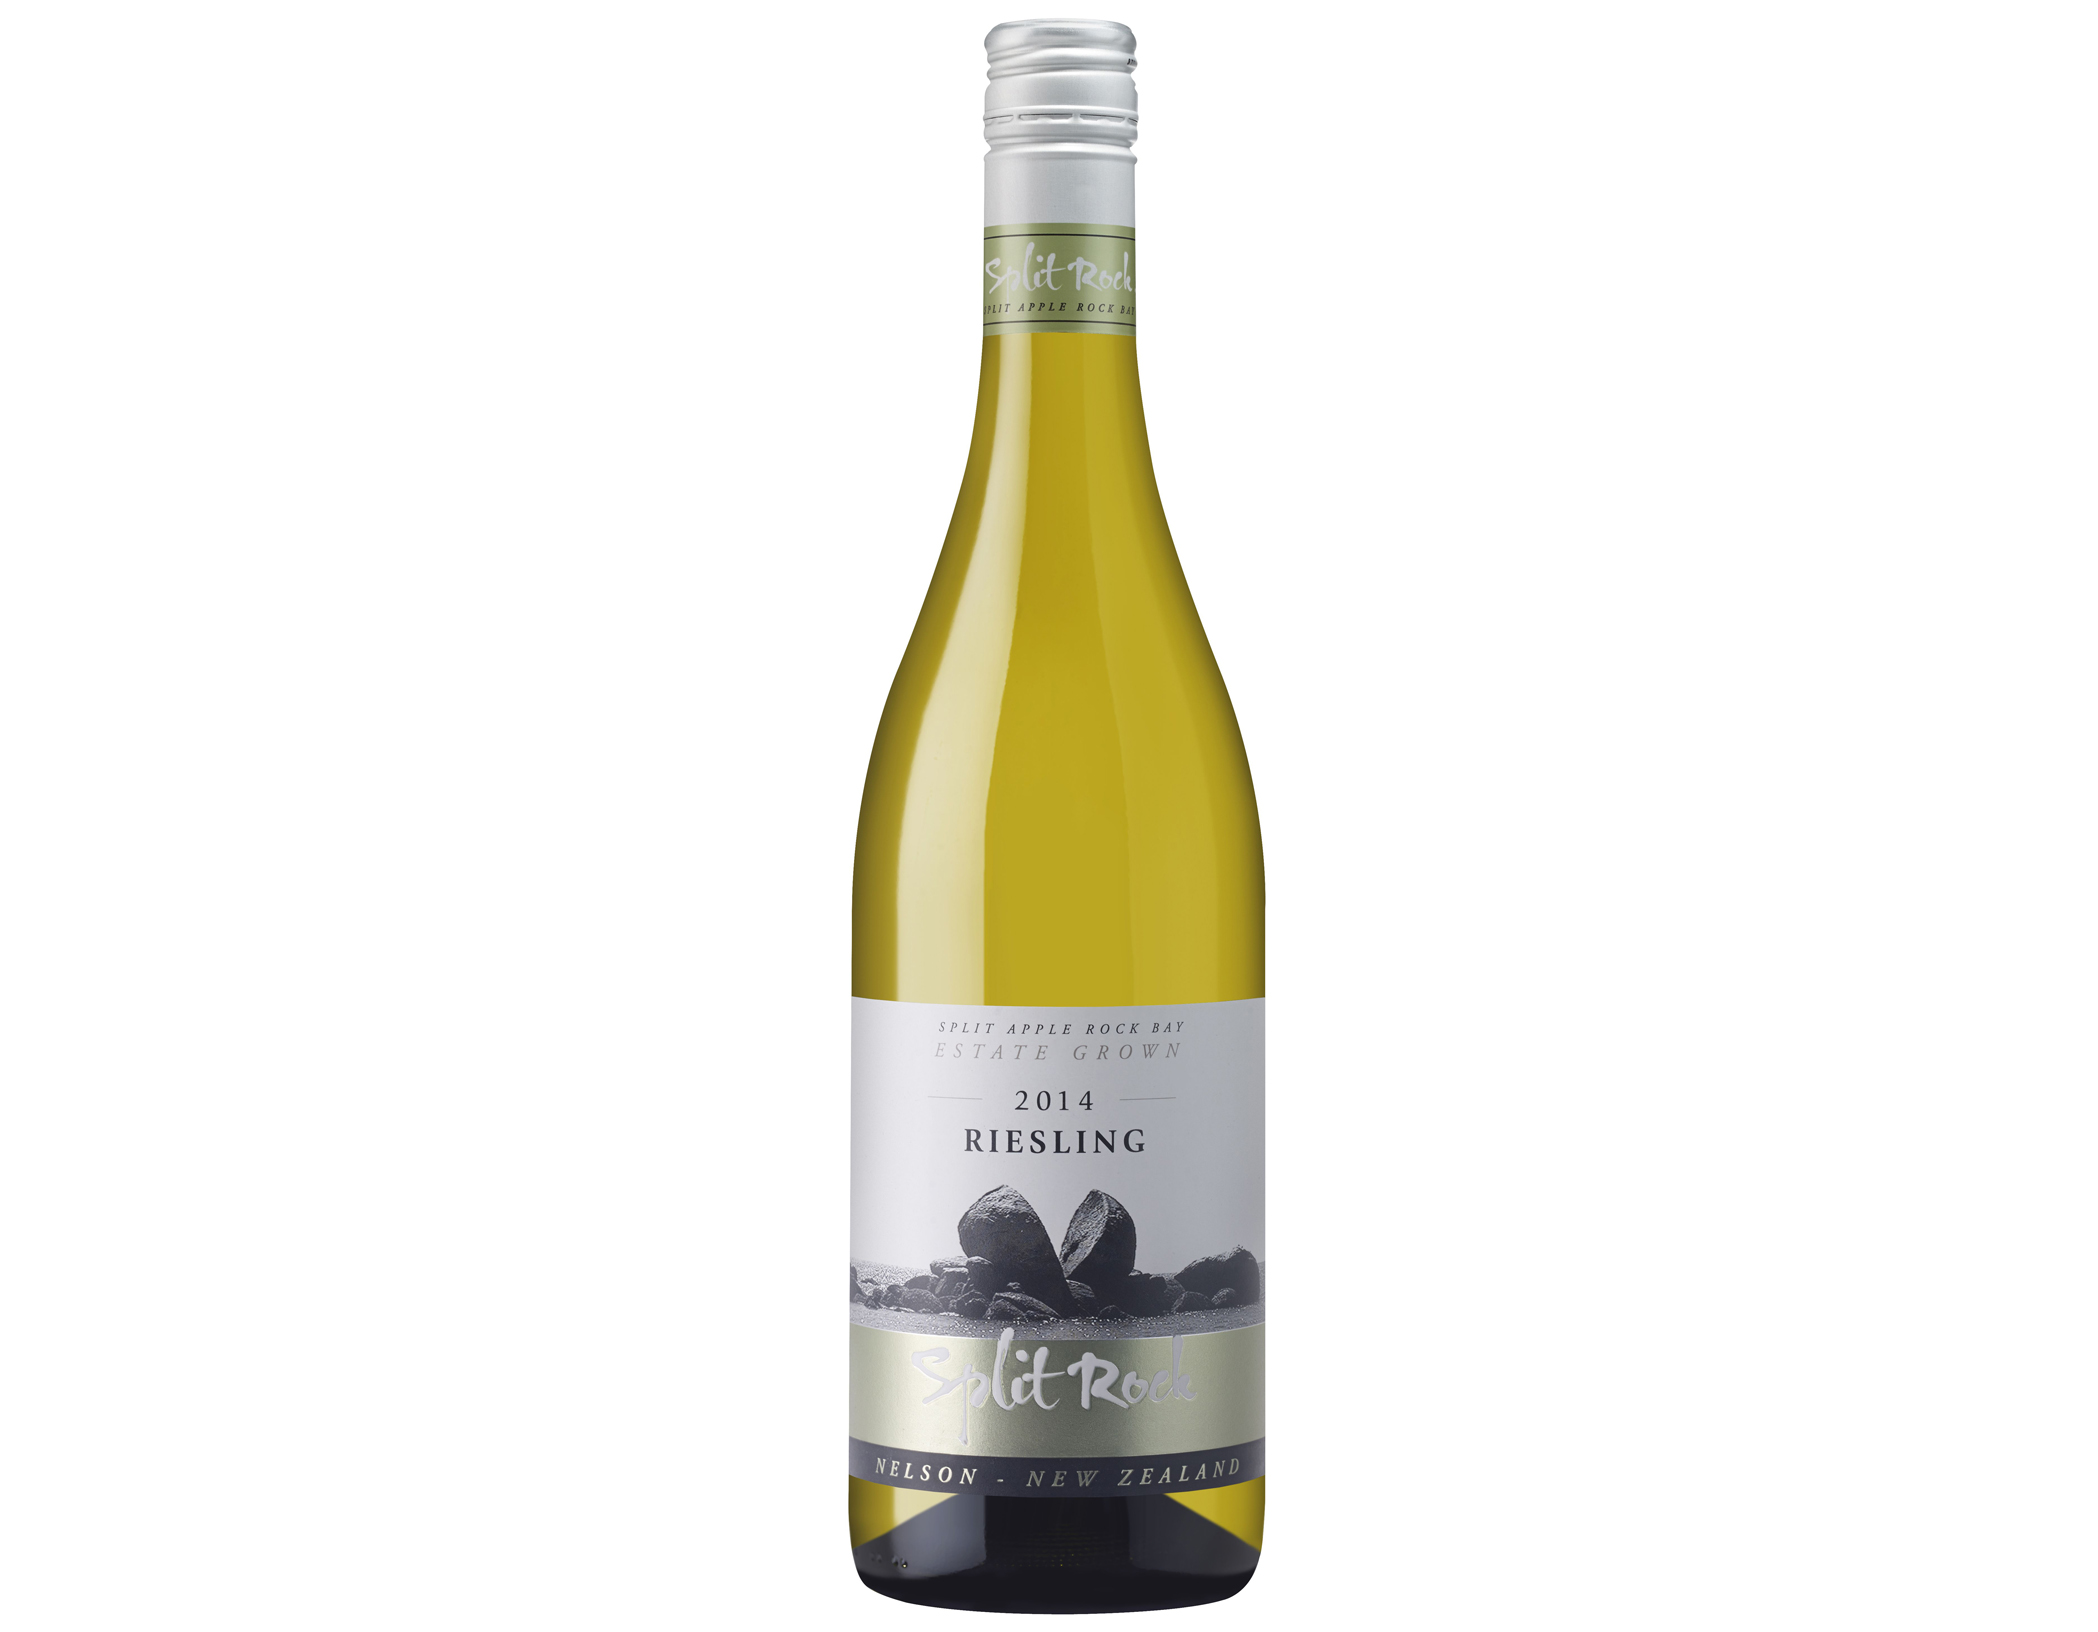 Split Rock Riesling, New Zealand